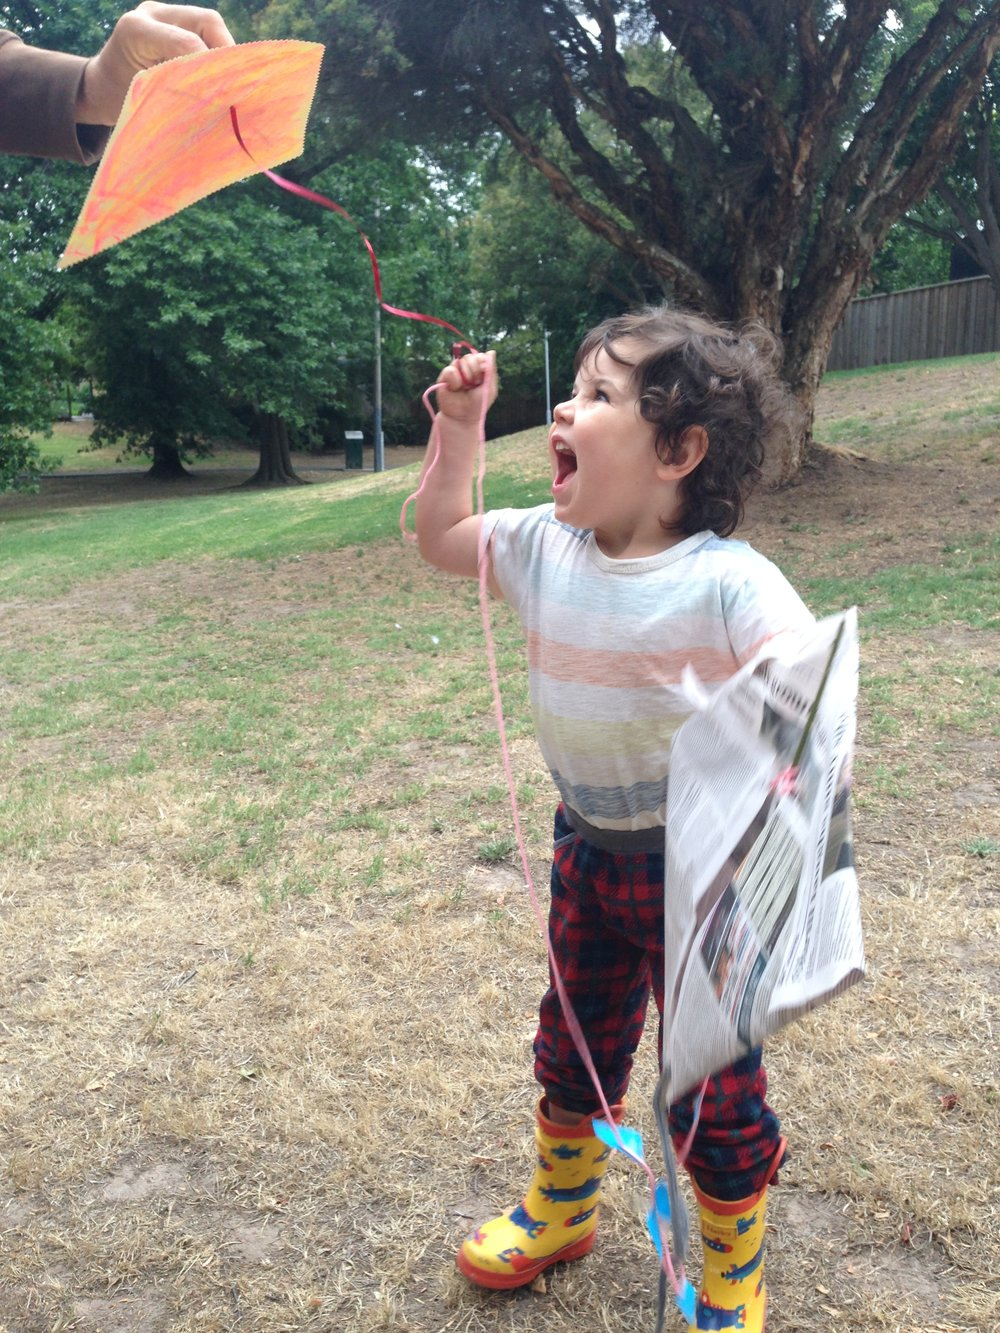 COME FLY WITH YOUR FAMILY with Mim and Ben - Come fly with your family and create a kite. This workshop will be a creative kids space where anything goes, mistakes are rad, and there's stacks of room for experimentation. Kites are made from recycled and found stuffcost: freeschedule: 11am - 12.30pmyou need to bring: nothing, all materials supplied